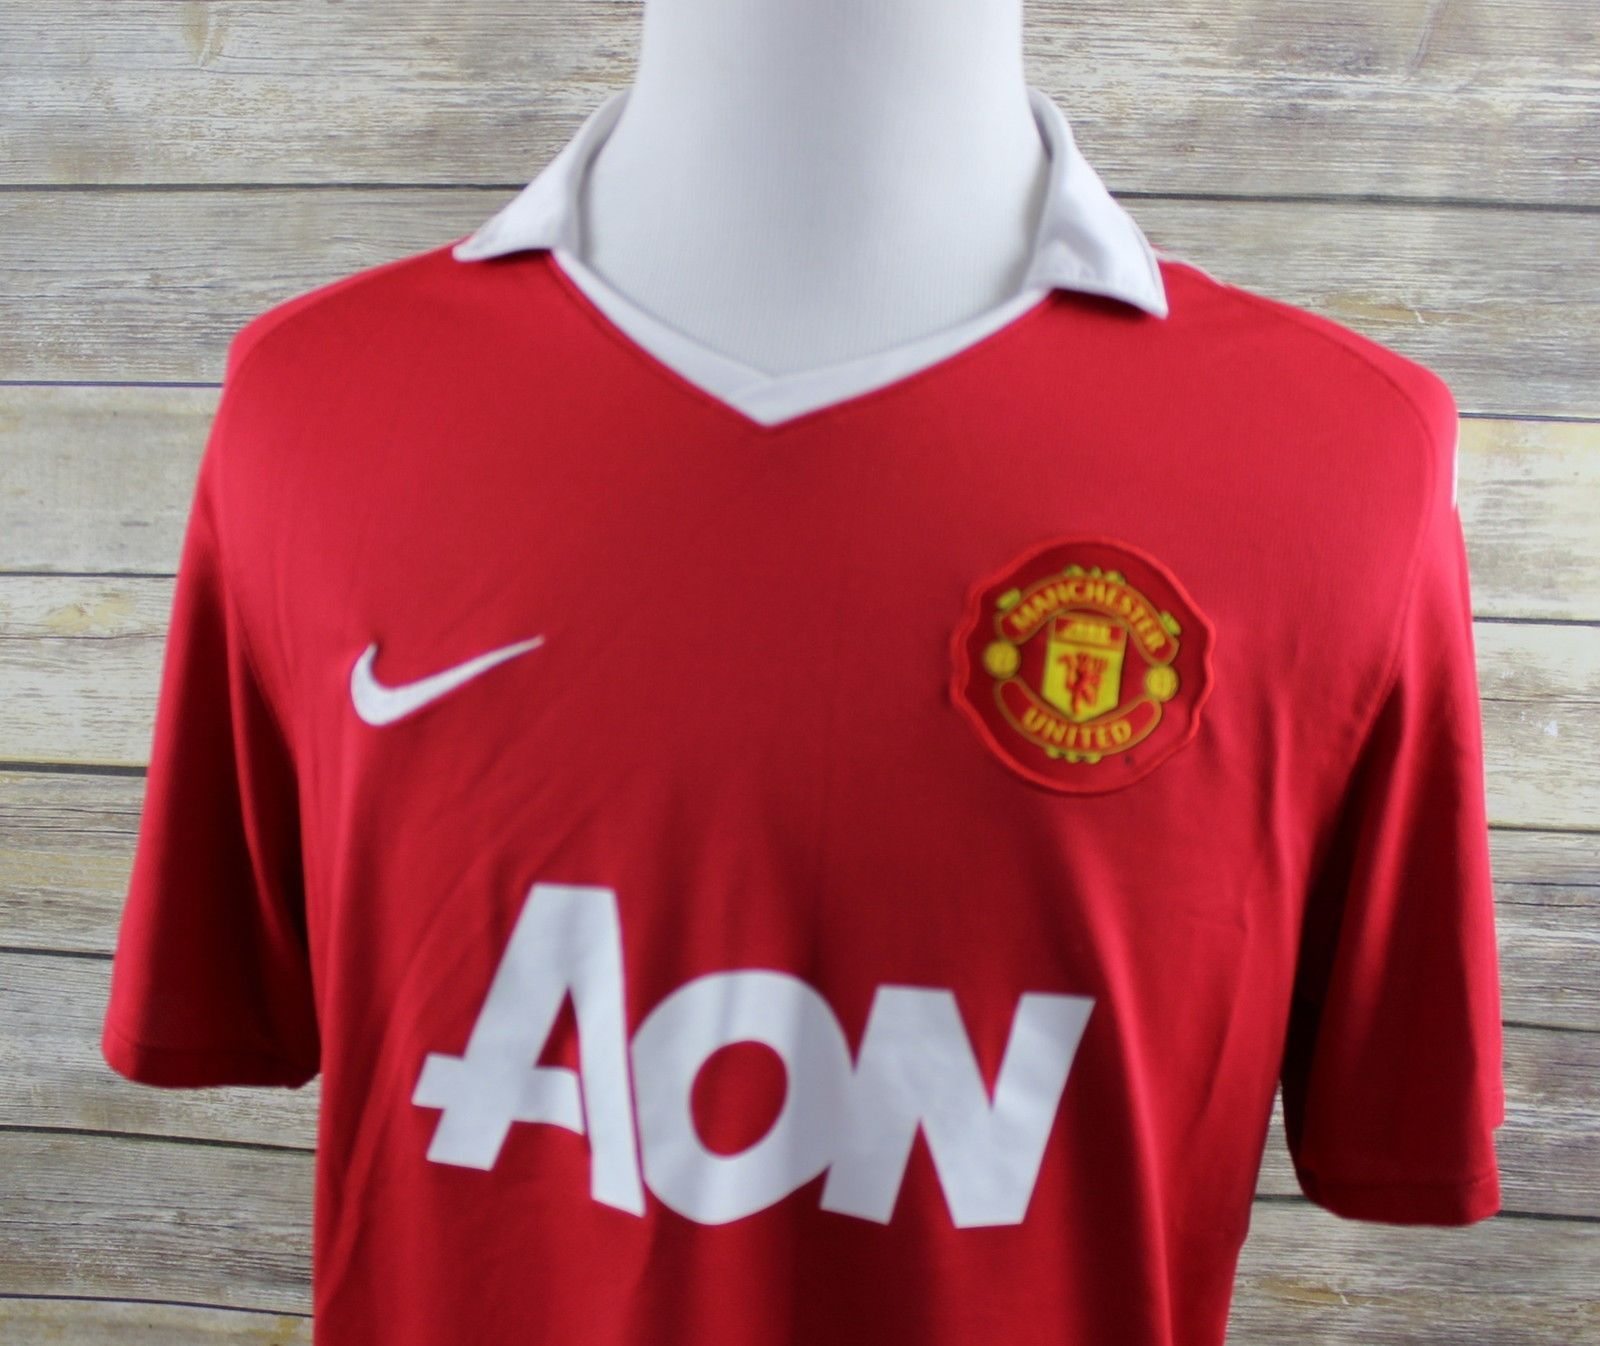 9a68f9110ac NEW Nike Dri-Fit Manchester United Polo Shirt MENS LARGE Red MUFC Soccer